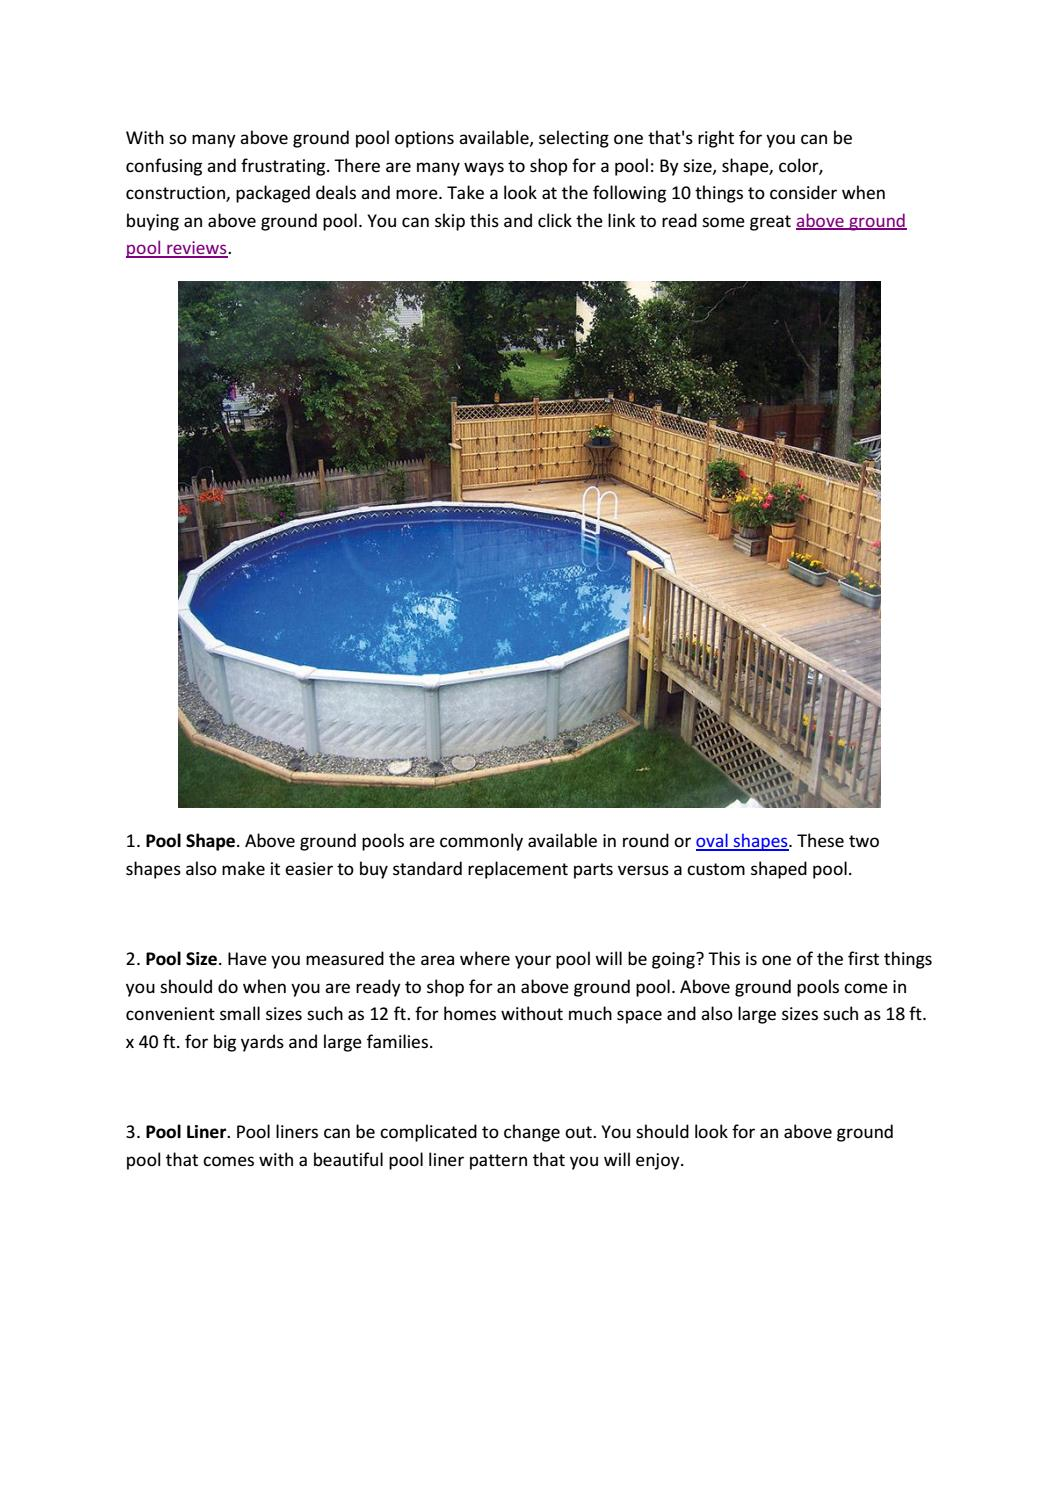 10 Things To Consider When Buying An Above Ground Pool And Some Reviews By Pool Reviews Issuu